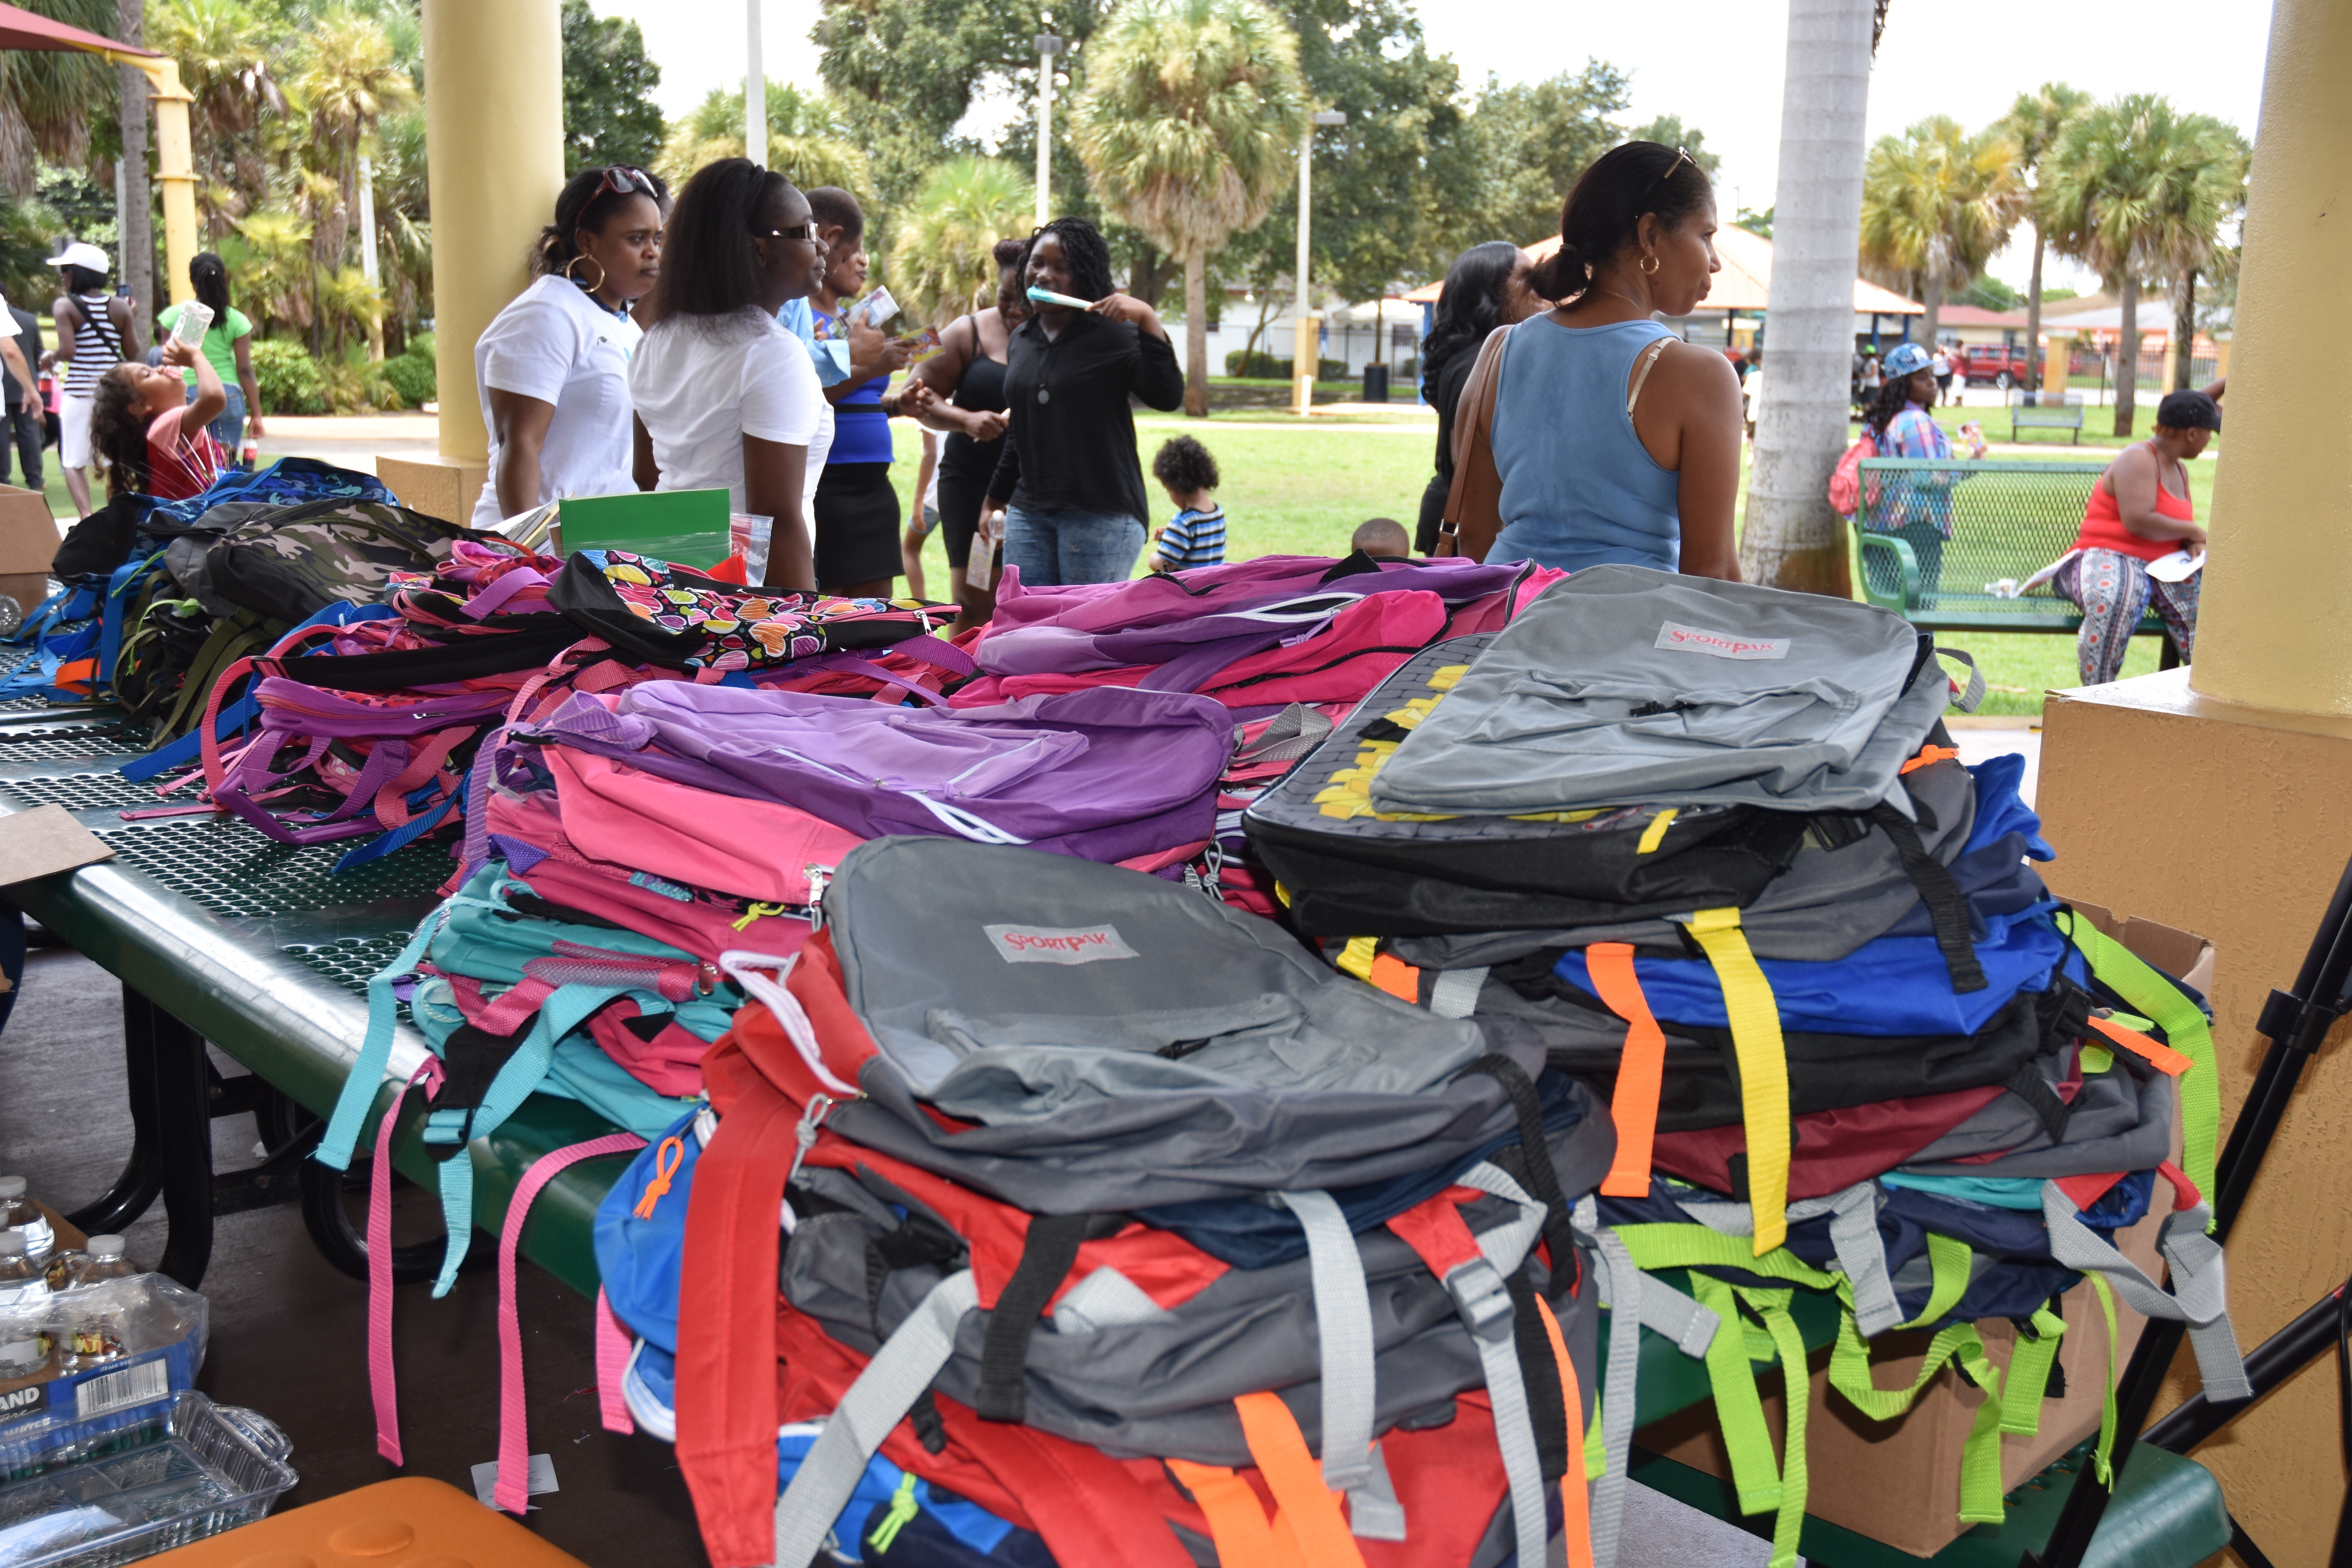 DSC 2657 - Community Give Back - Backpack-A-Thon 2015